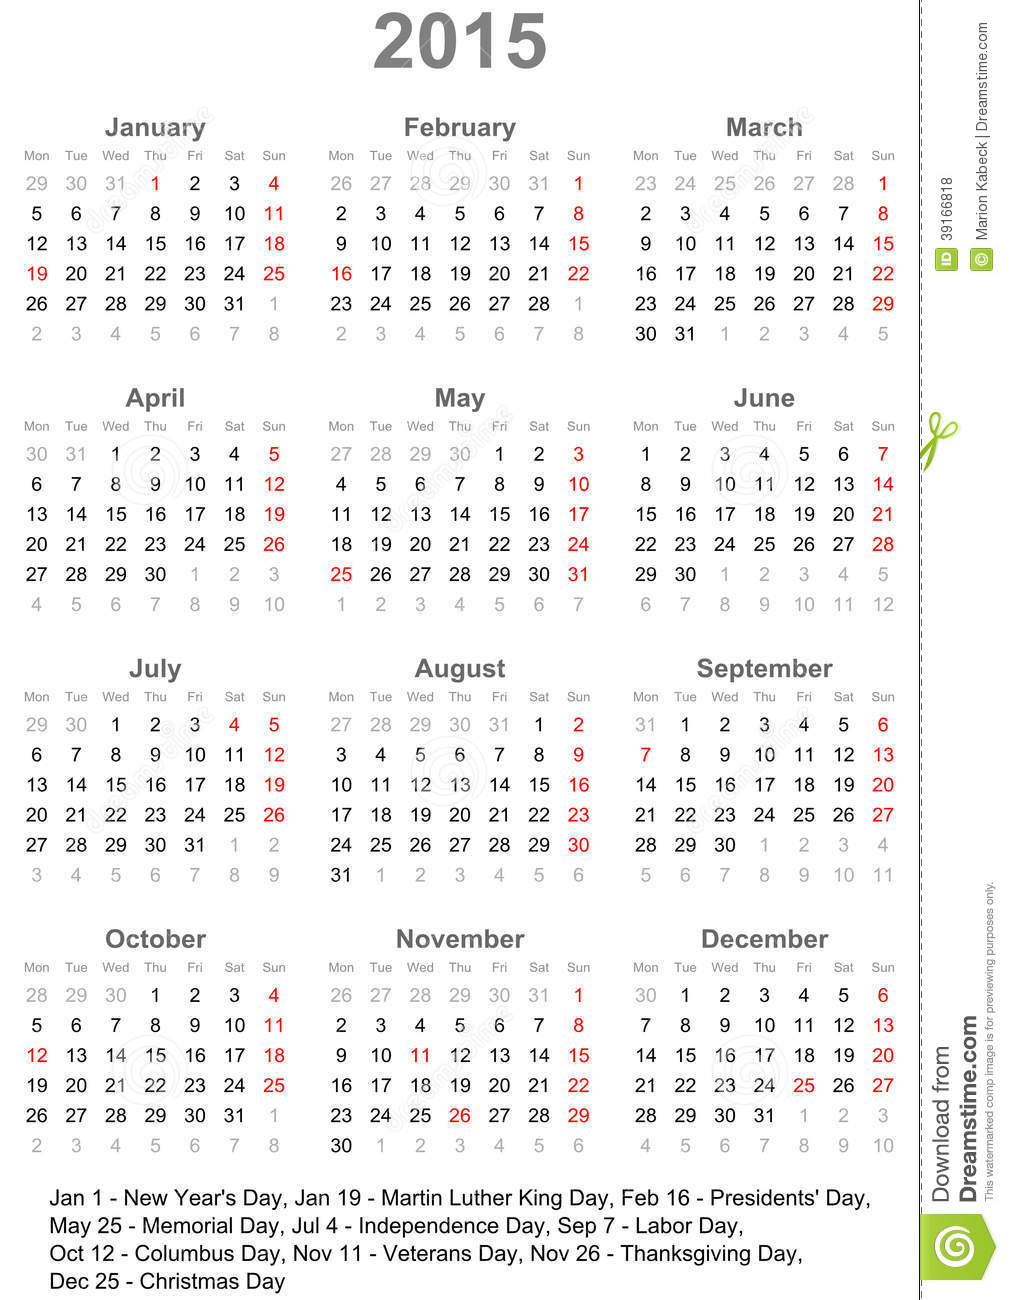 Govt releases 2015 public holiday dates | TODAYonline